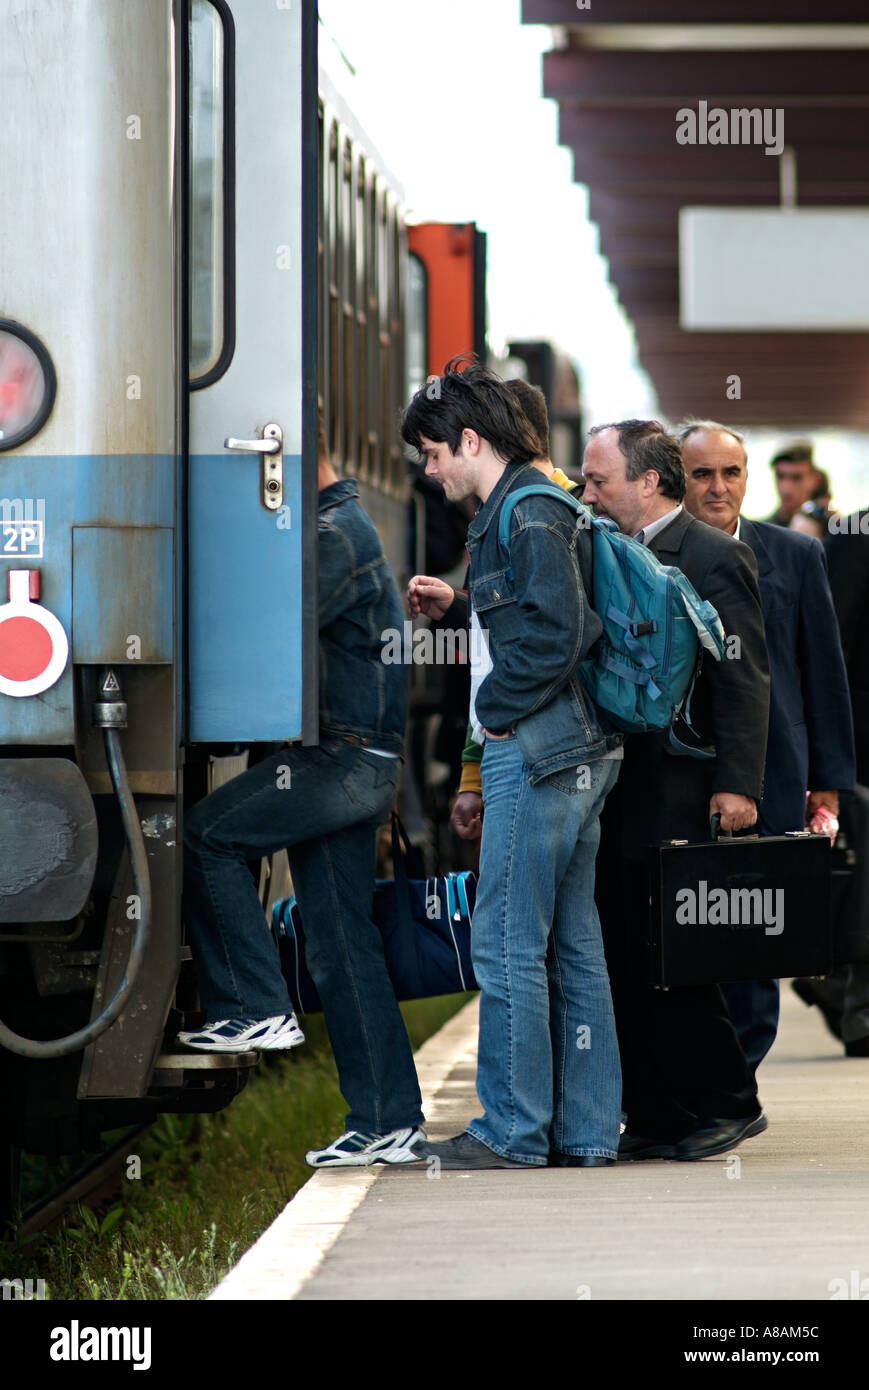 Passengers Boarding a Train Carriage - Stock Image